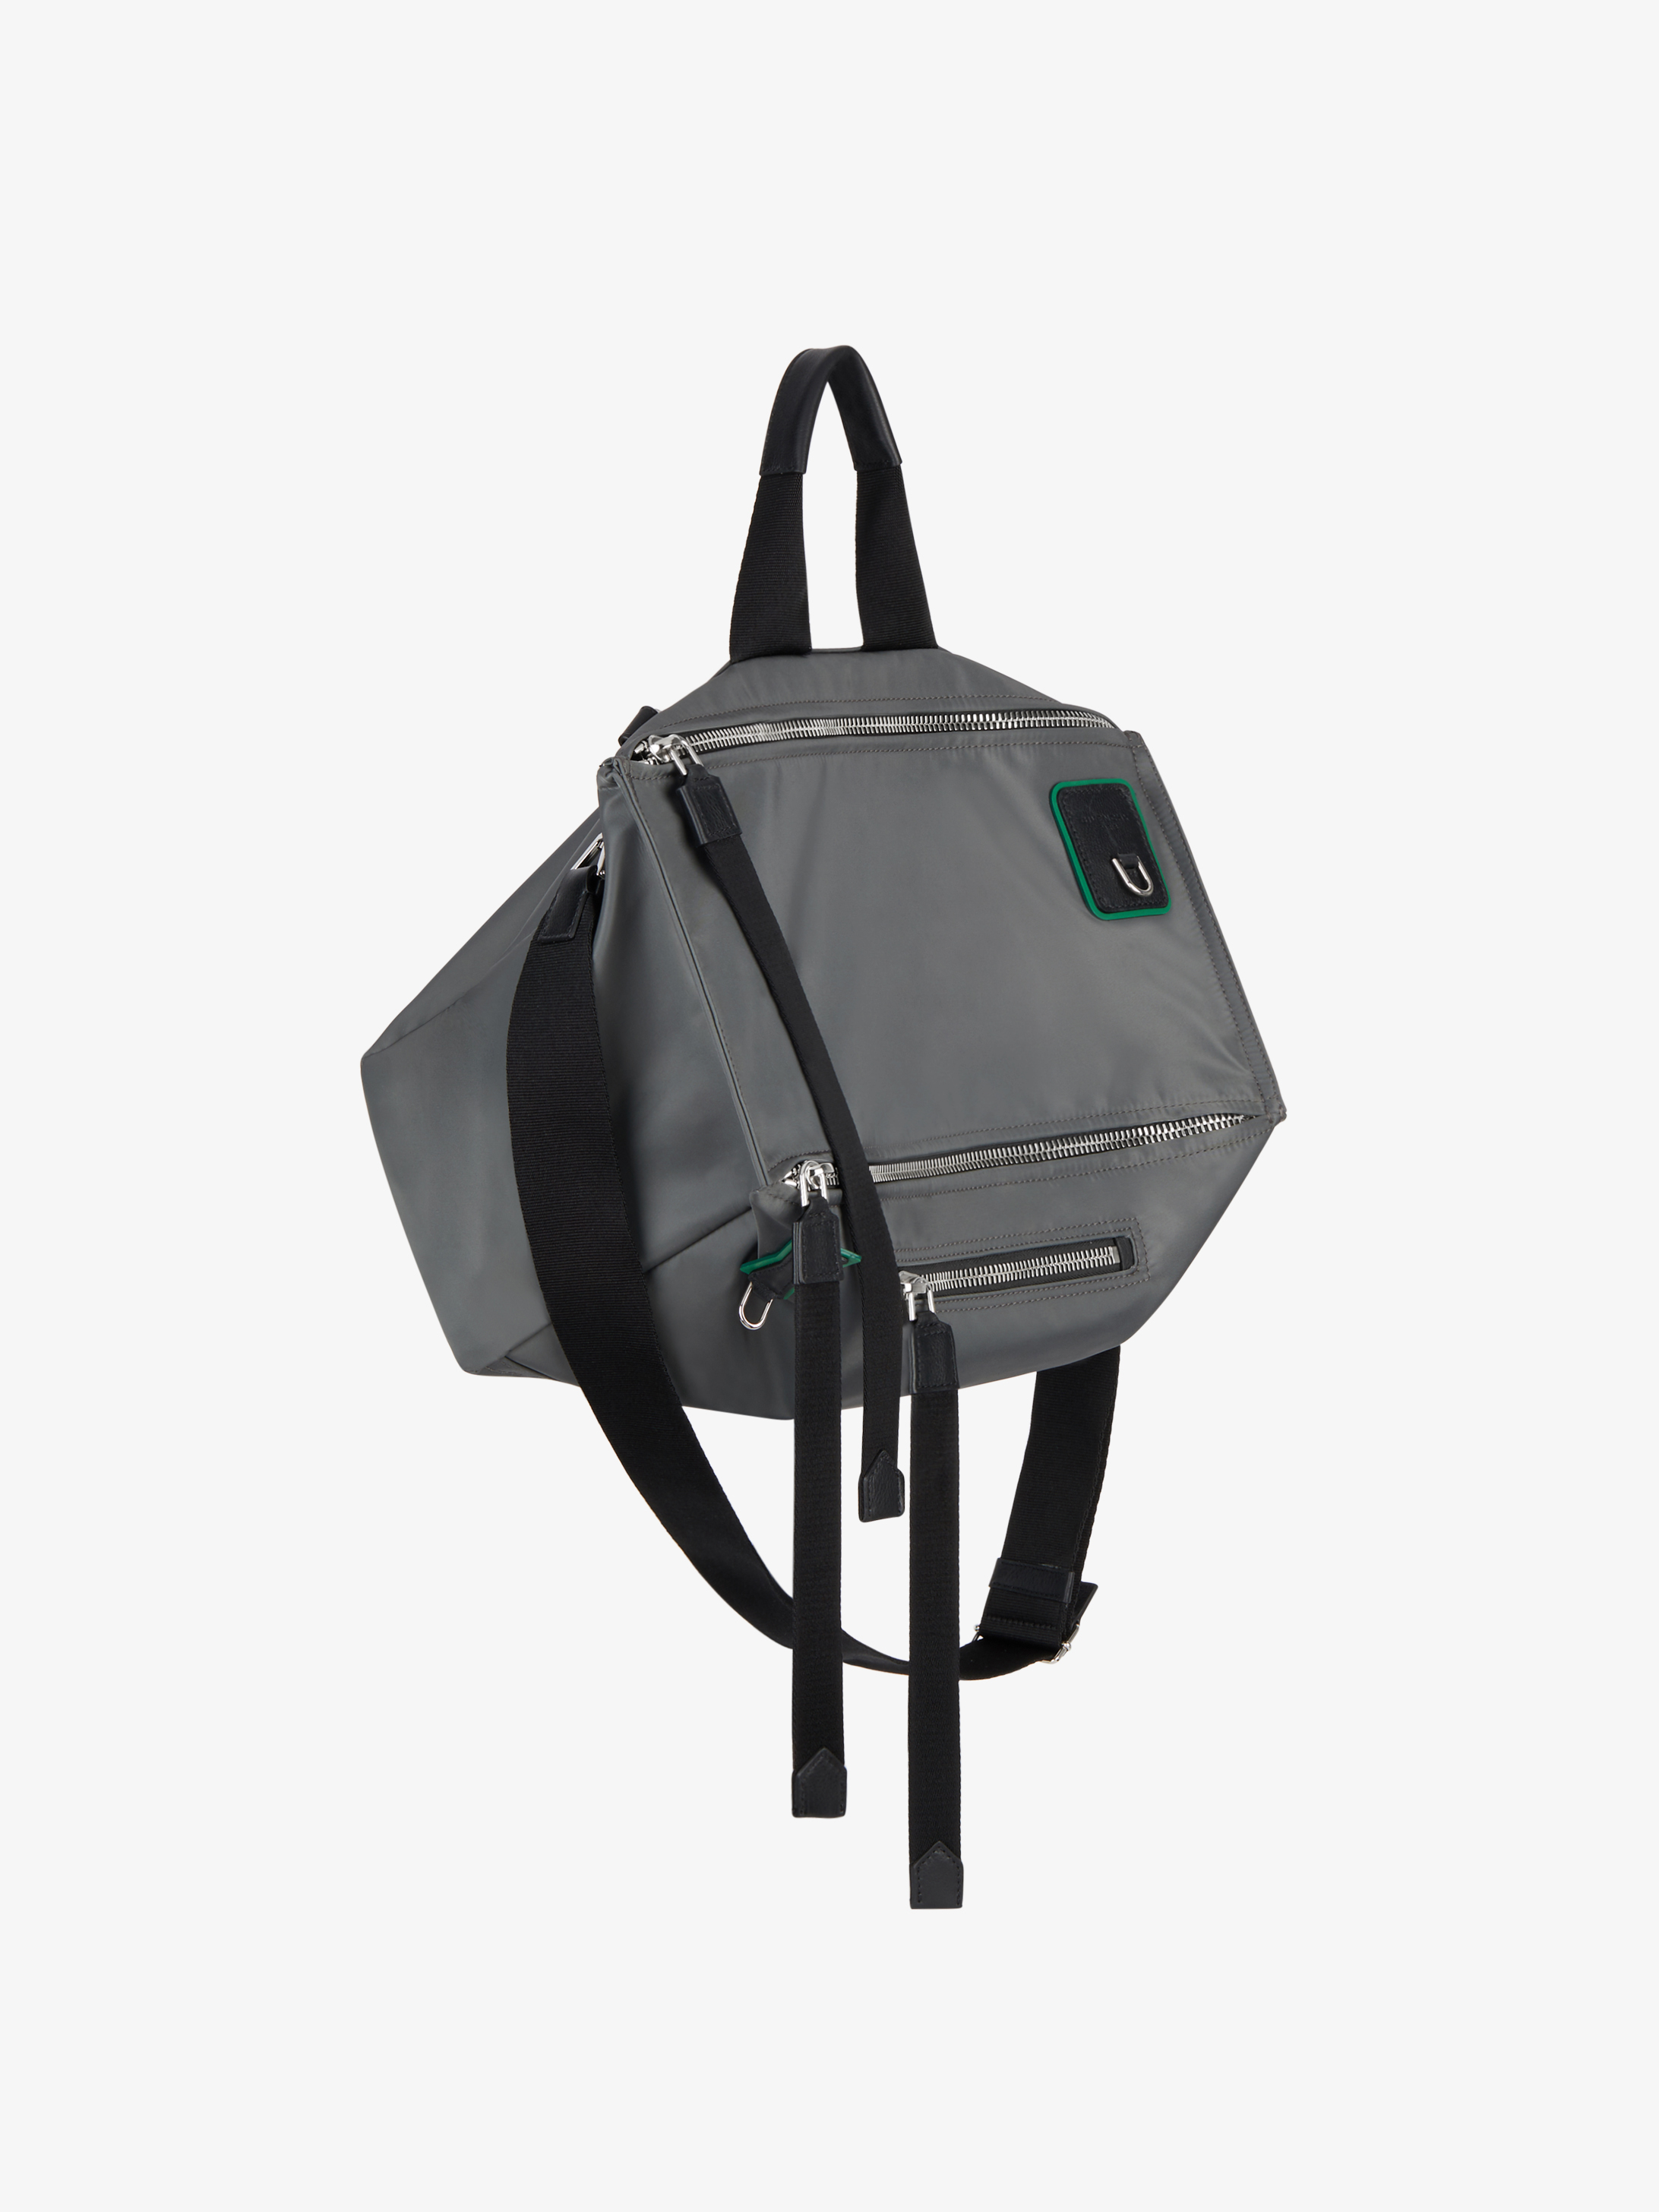 Pandora messenger bag in nylon with contrasted details